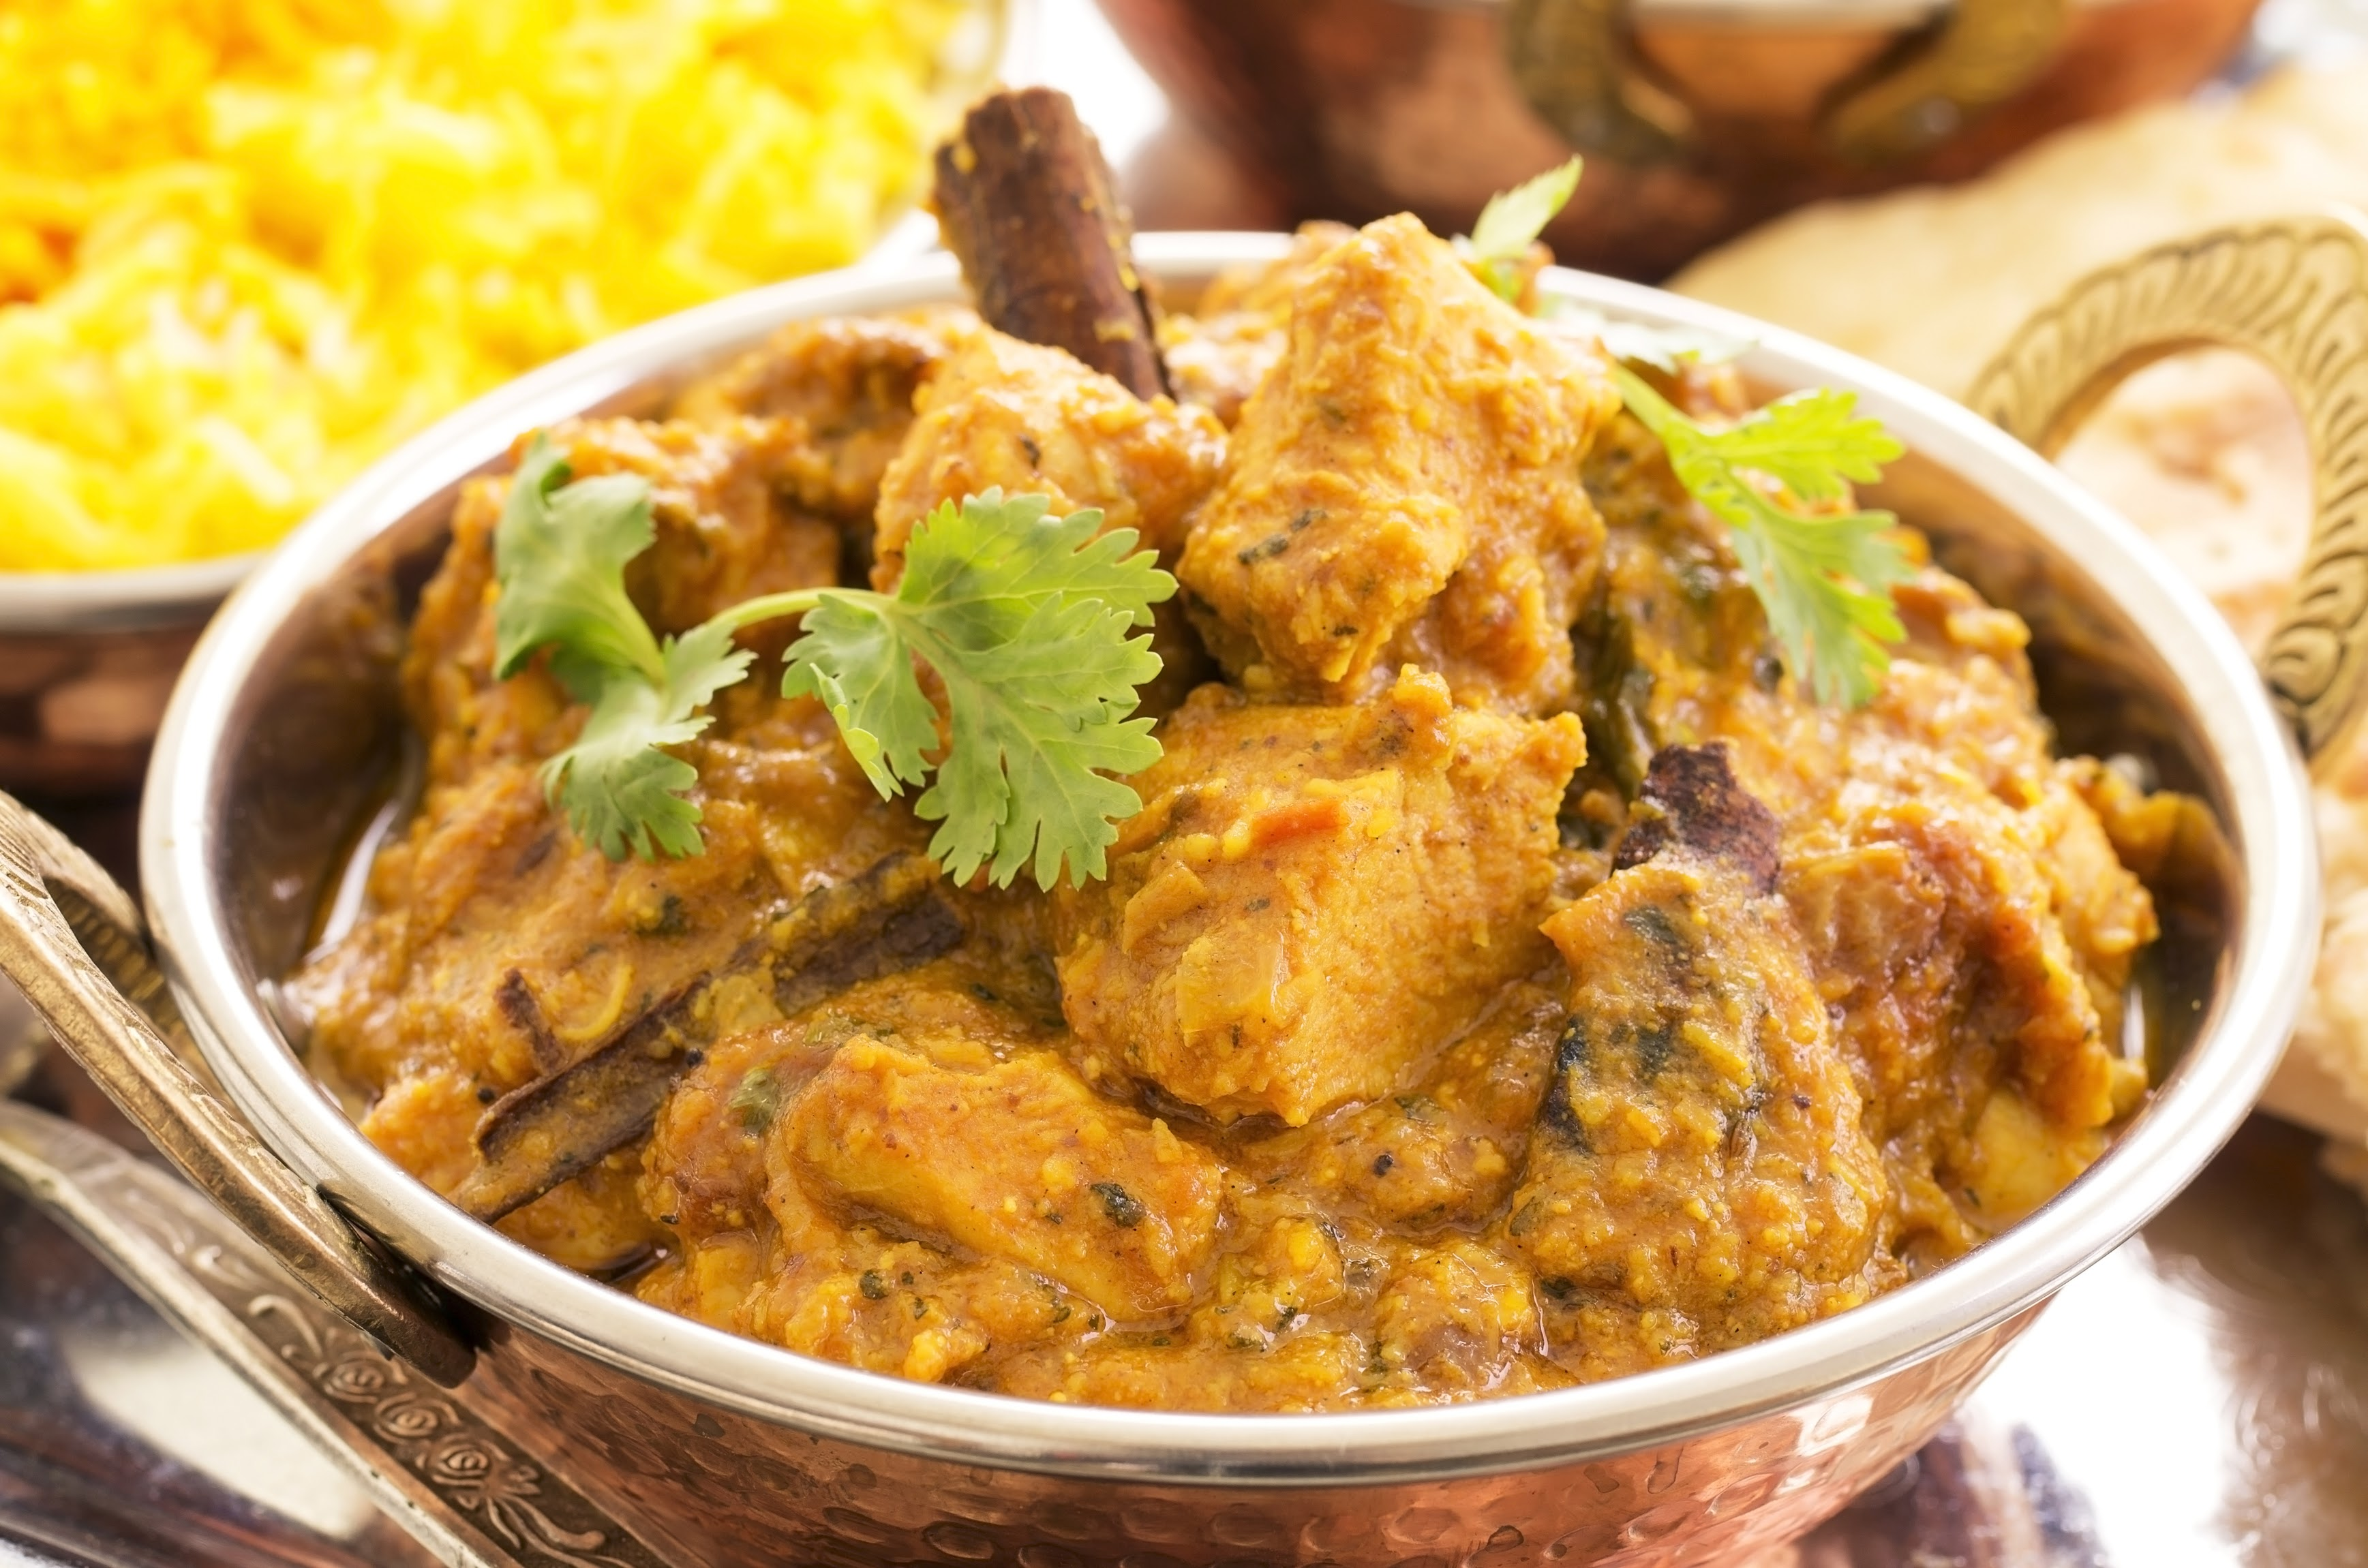 HEALTHY EATING | Slow Cooker Coconut Chicken Curry Recipe